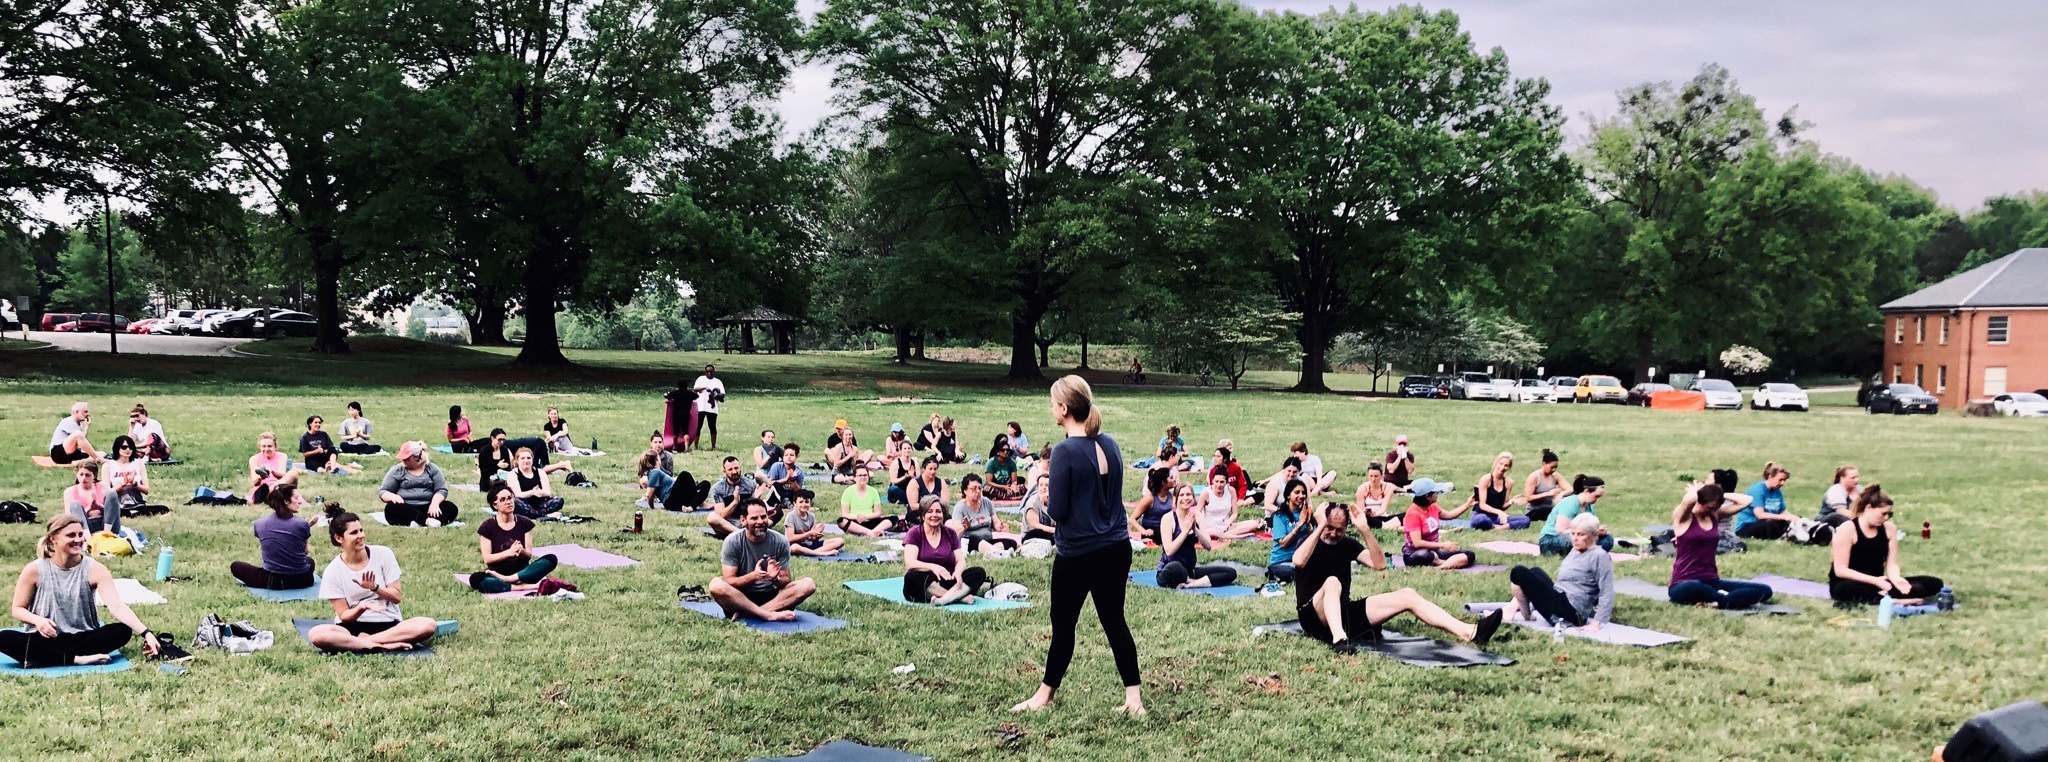 Yoga class outdoors at Dix Park